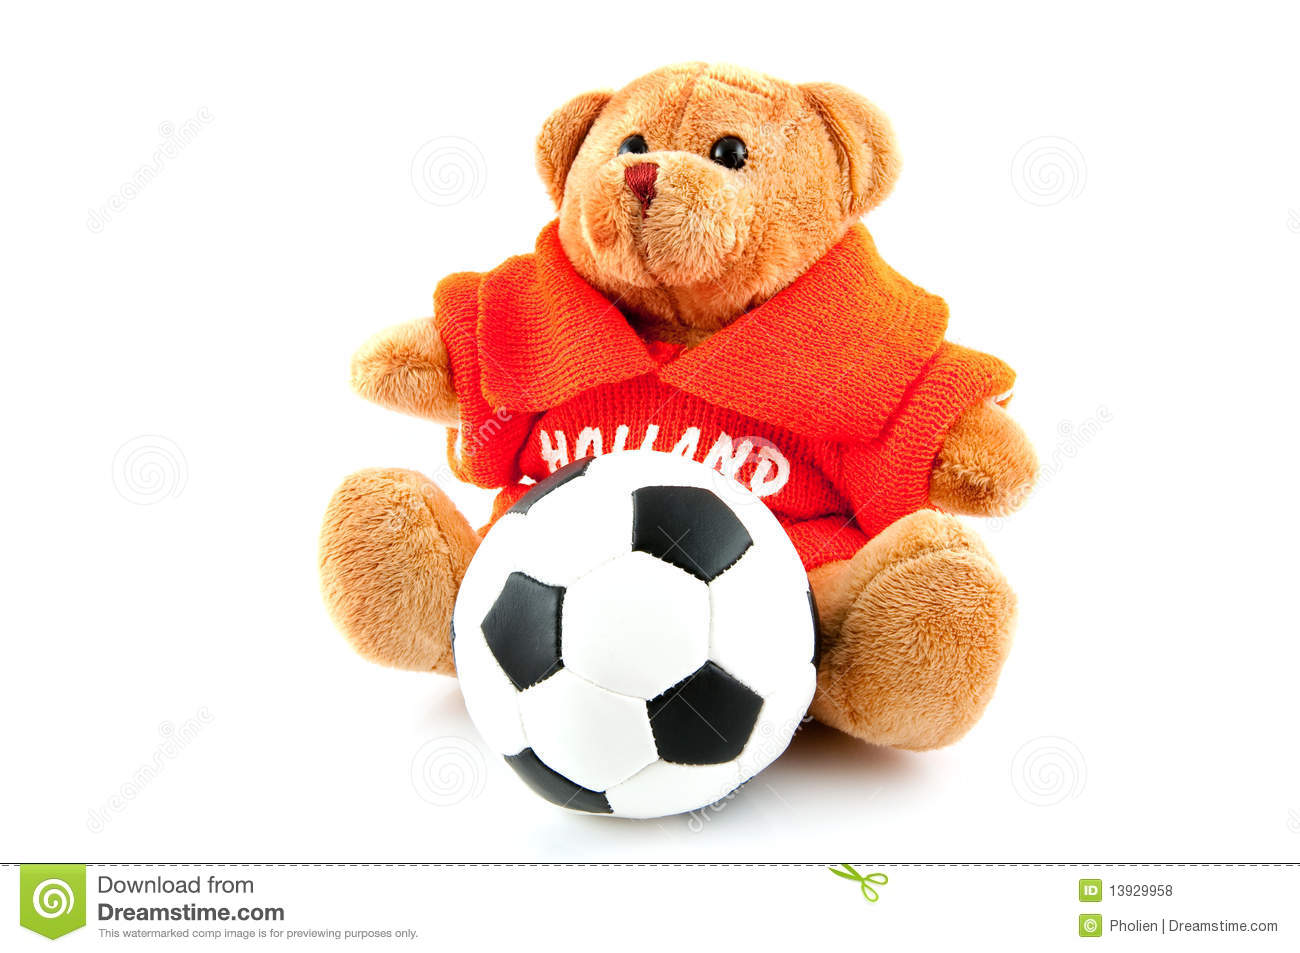 Voodoo amulet royalty free stock photos image 2718528 - Mascotte Bear With Holland Shirt And Football Royalty Free Stock Photos